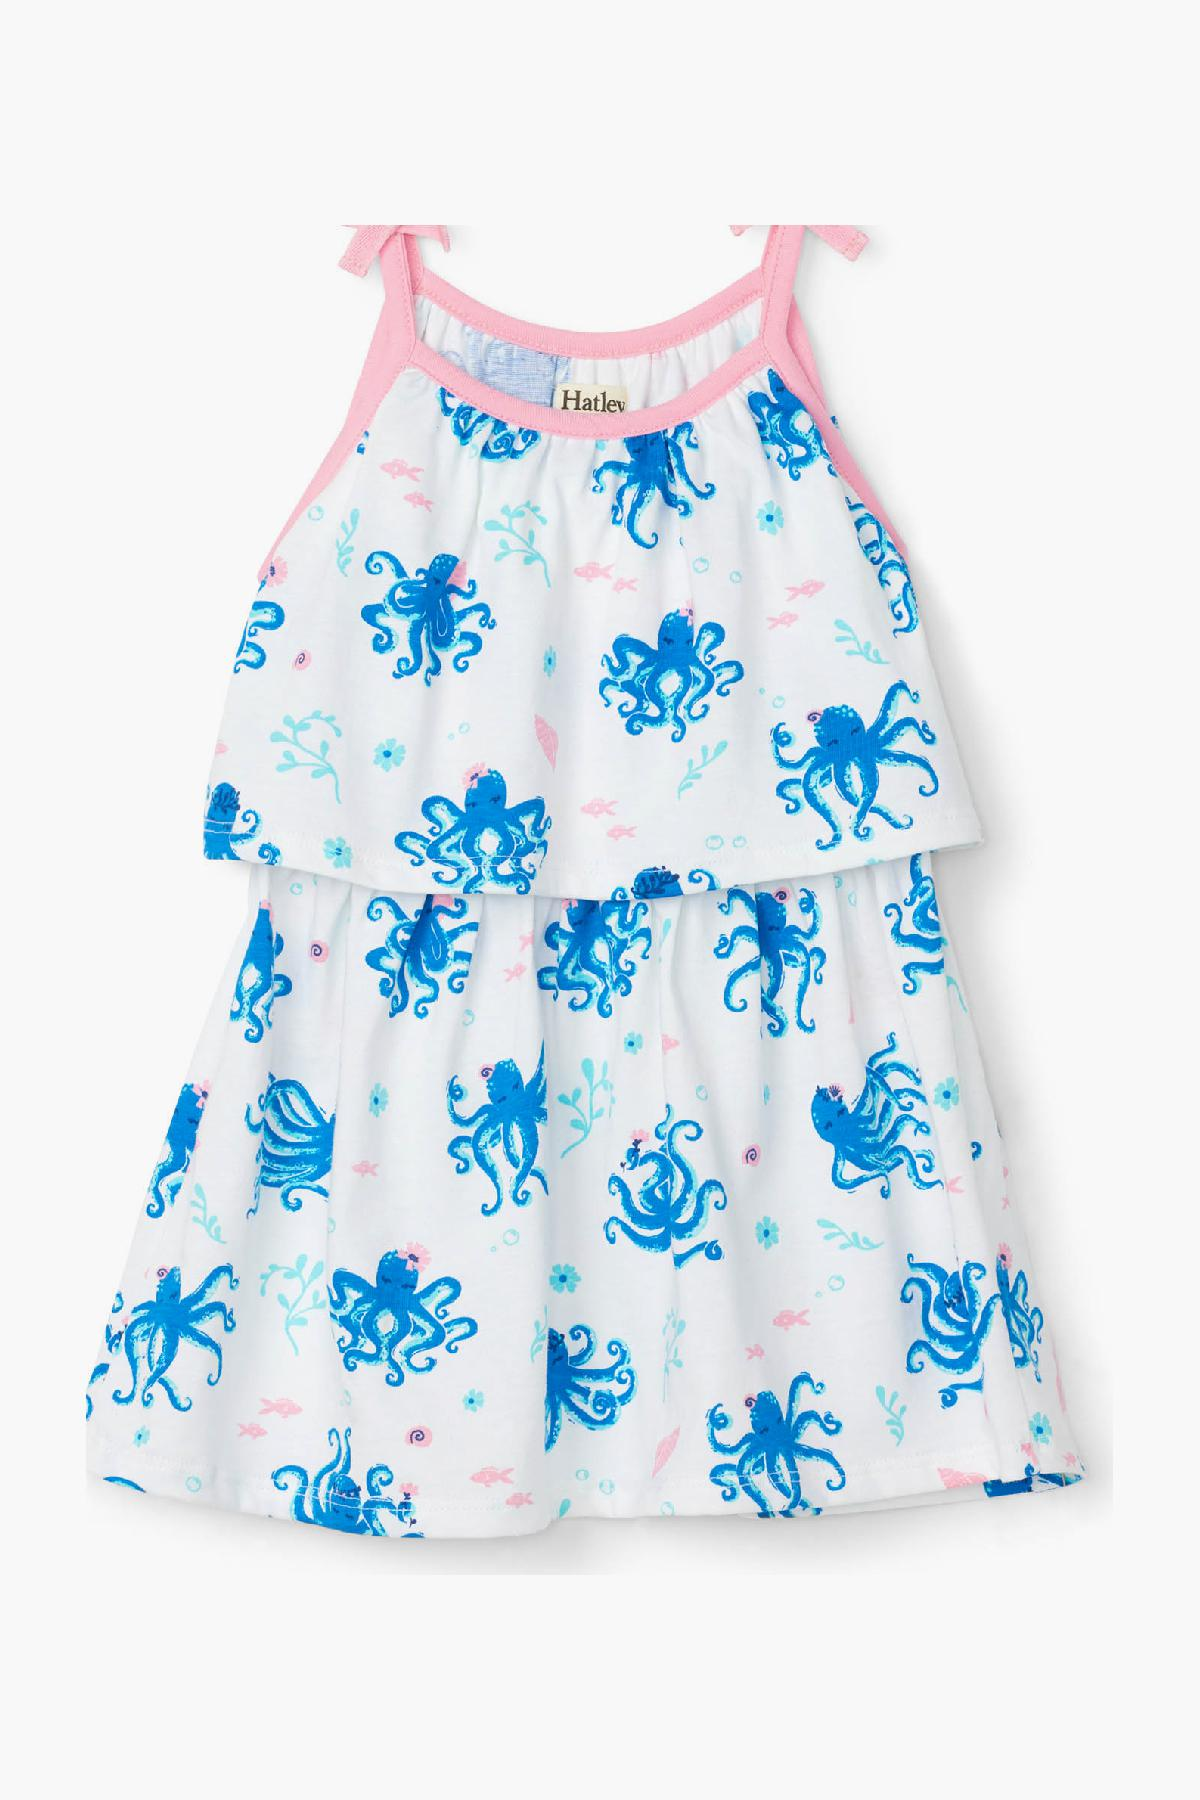 Hatley Pretty Octopuses Baby Girls Dress